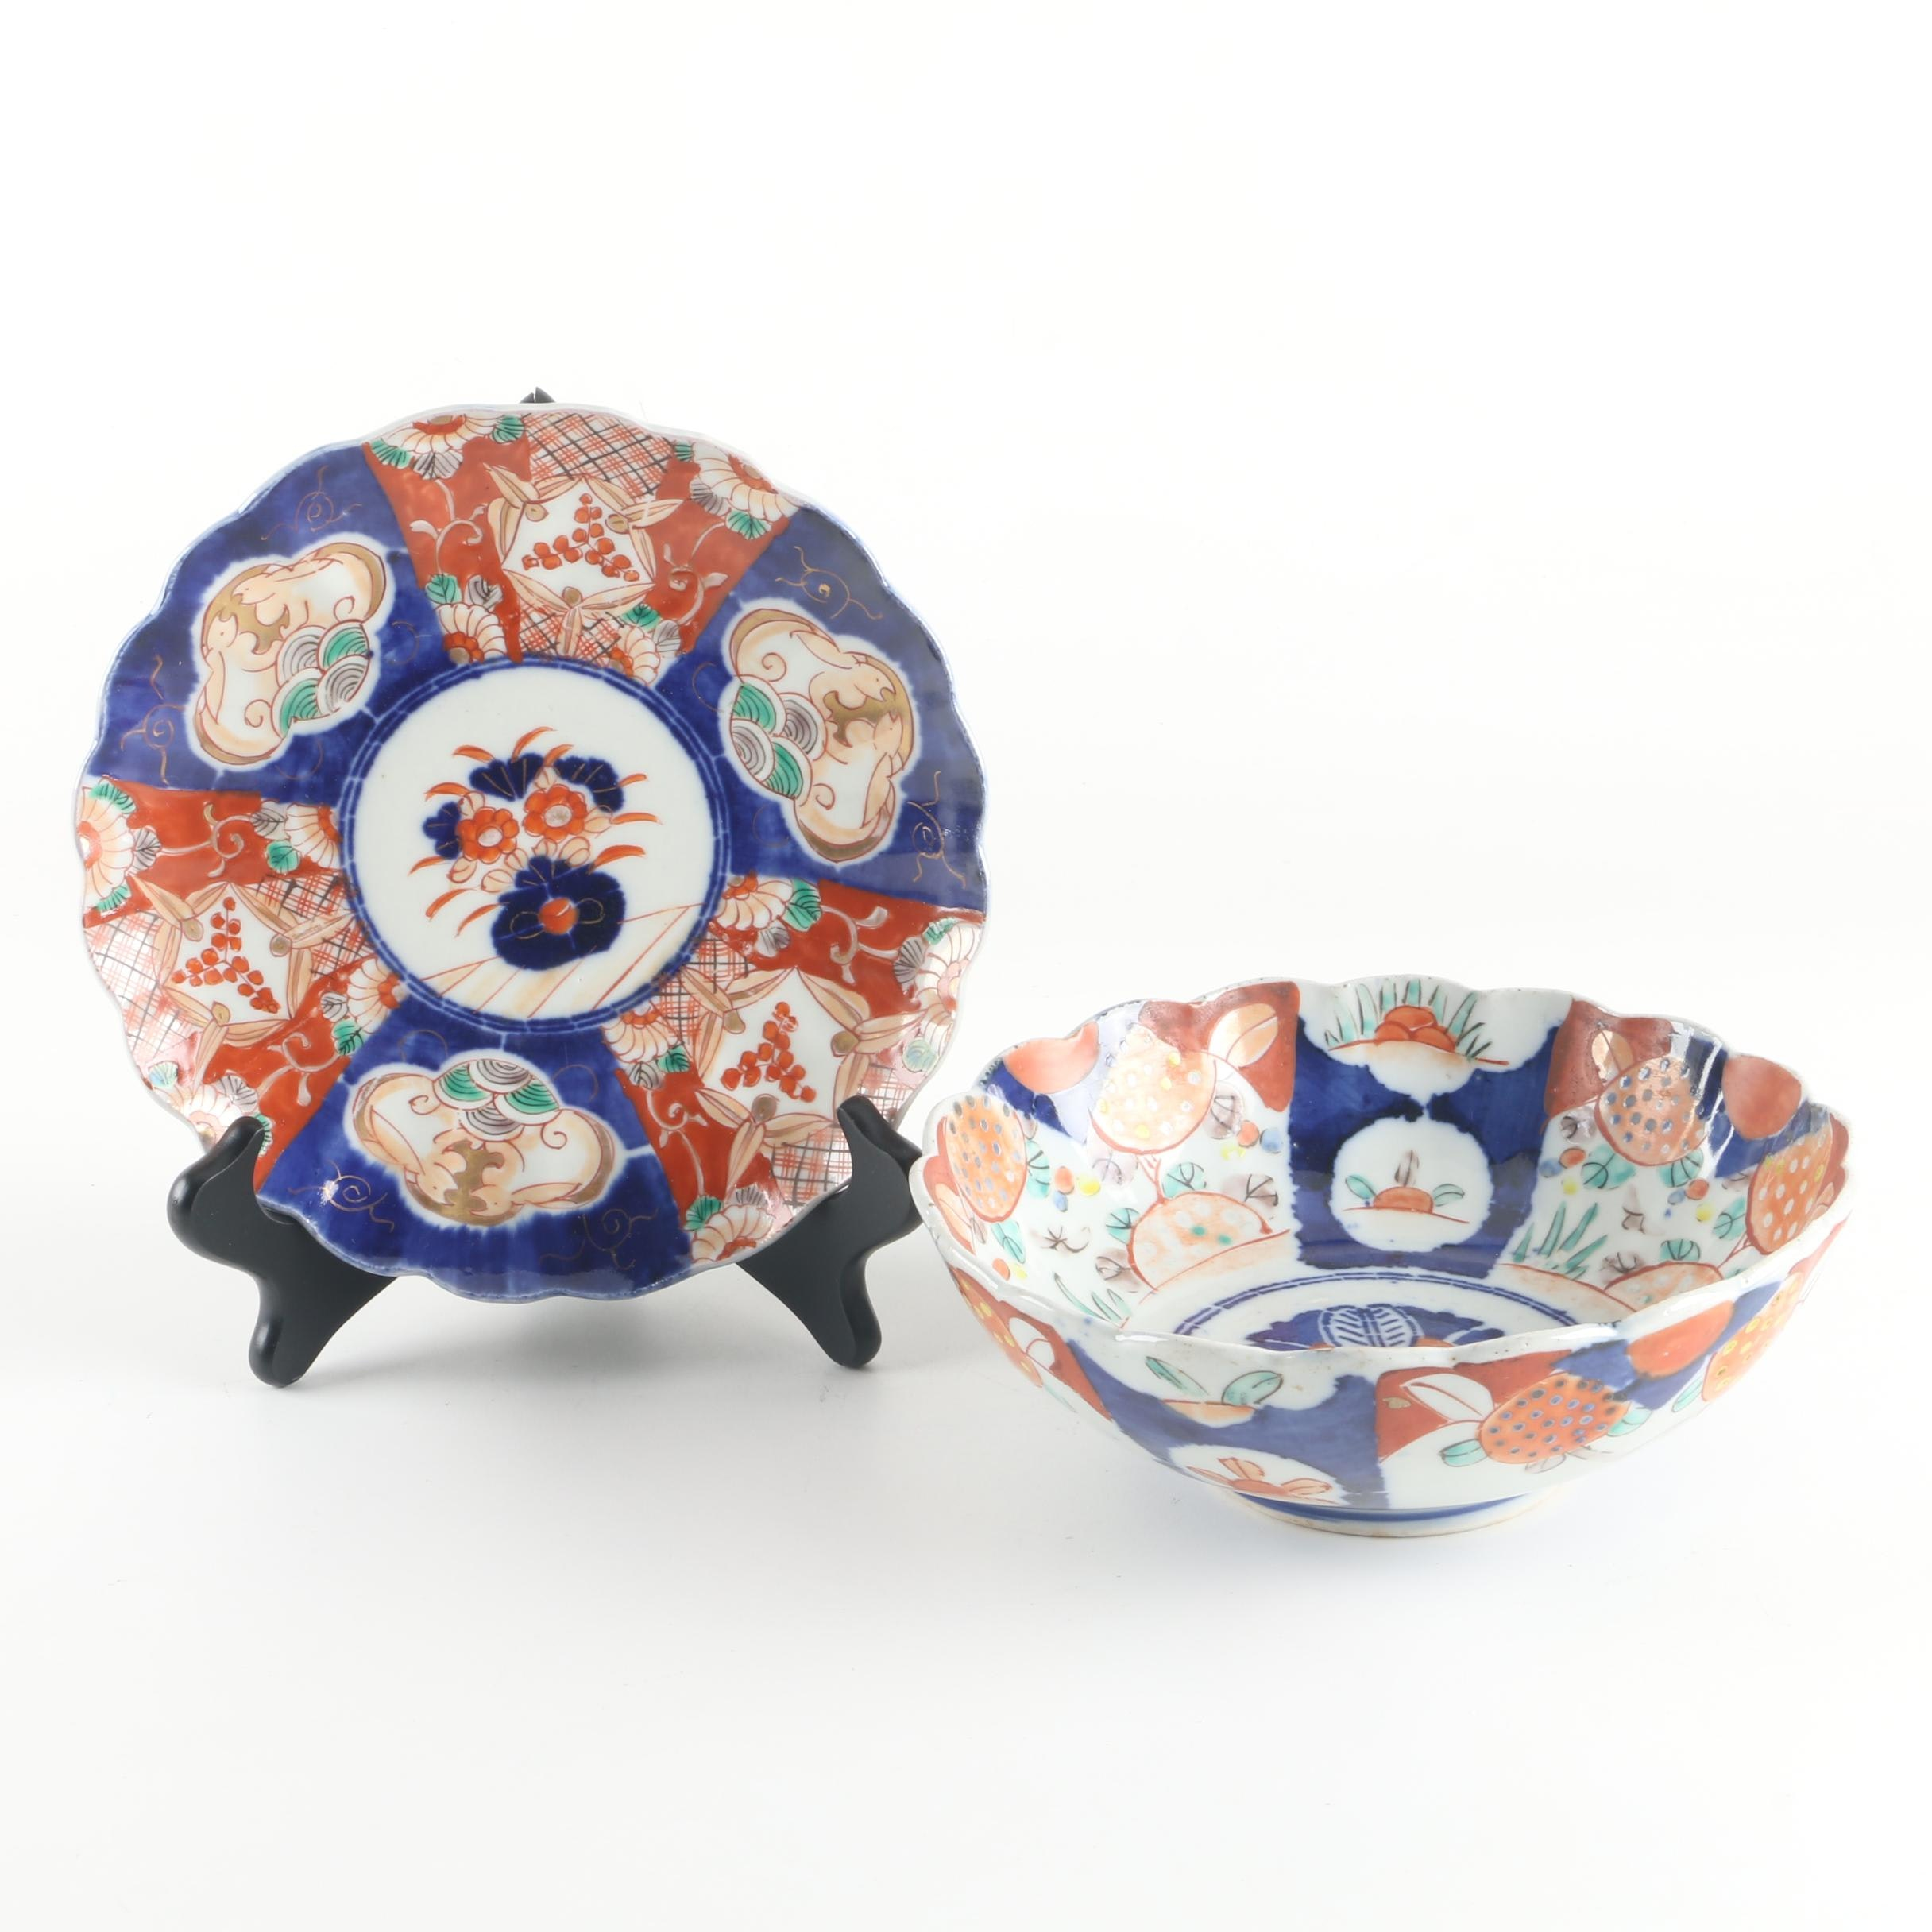 Japanese Hand-Painted Imari Porcelain Bowl and Plate